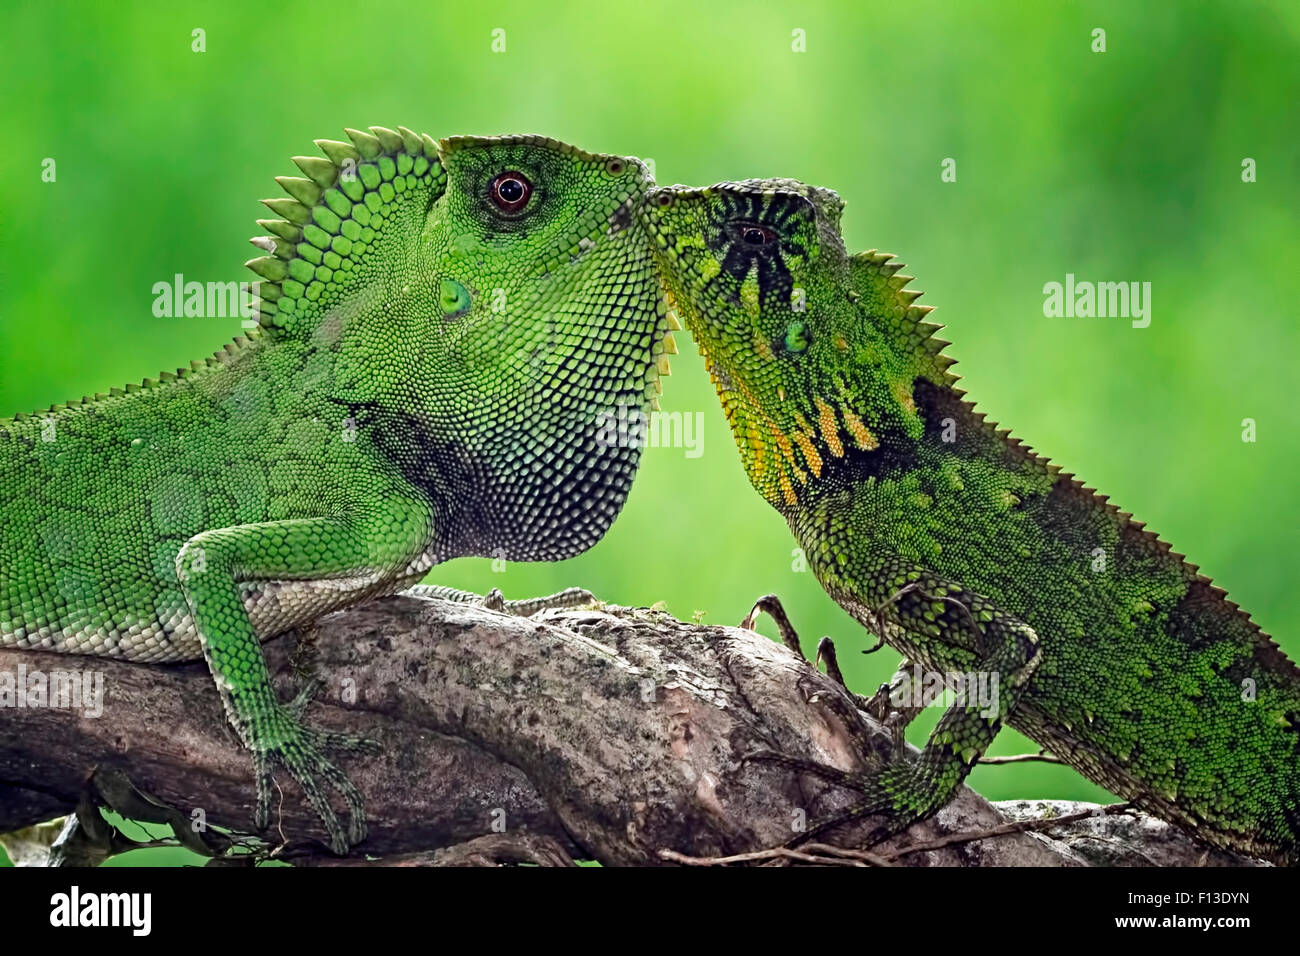 Two chameleons looking at each other - Stock Image